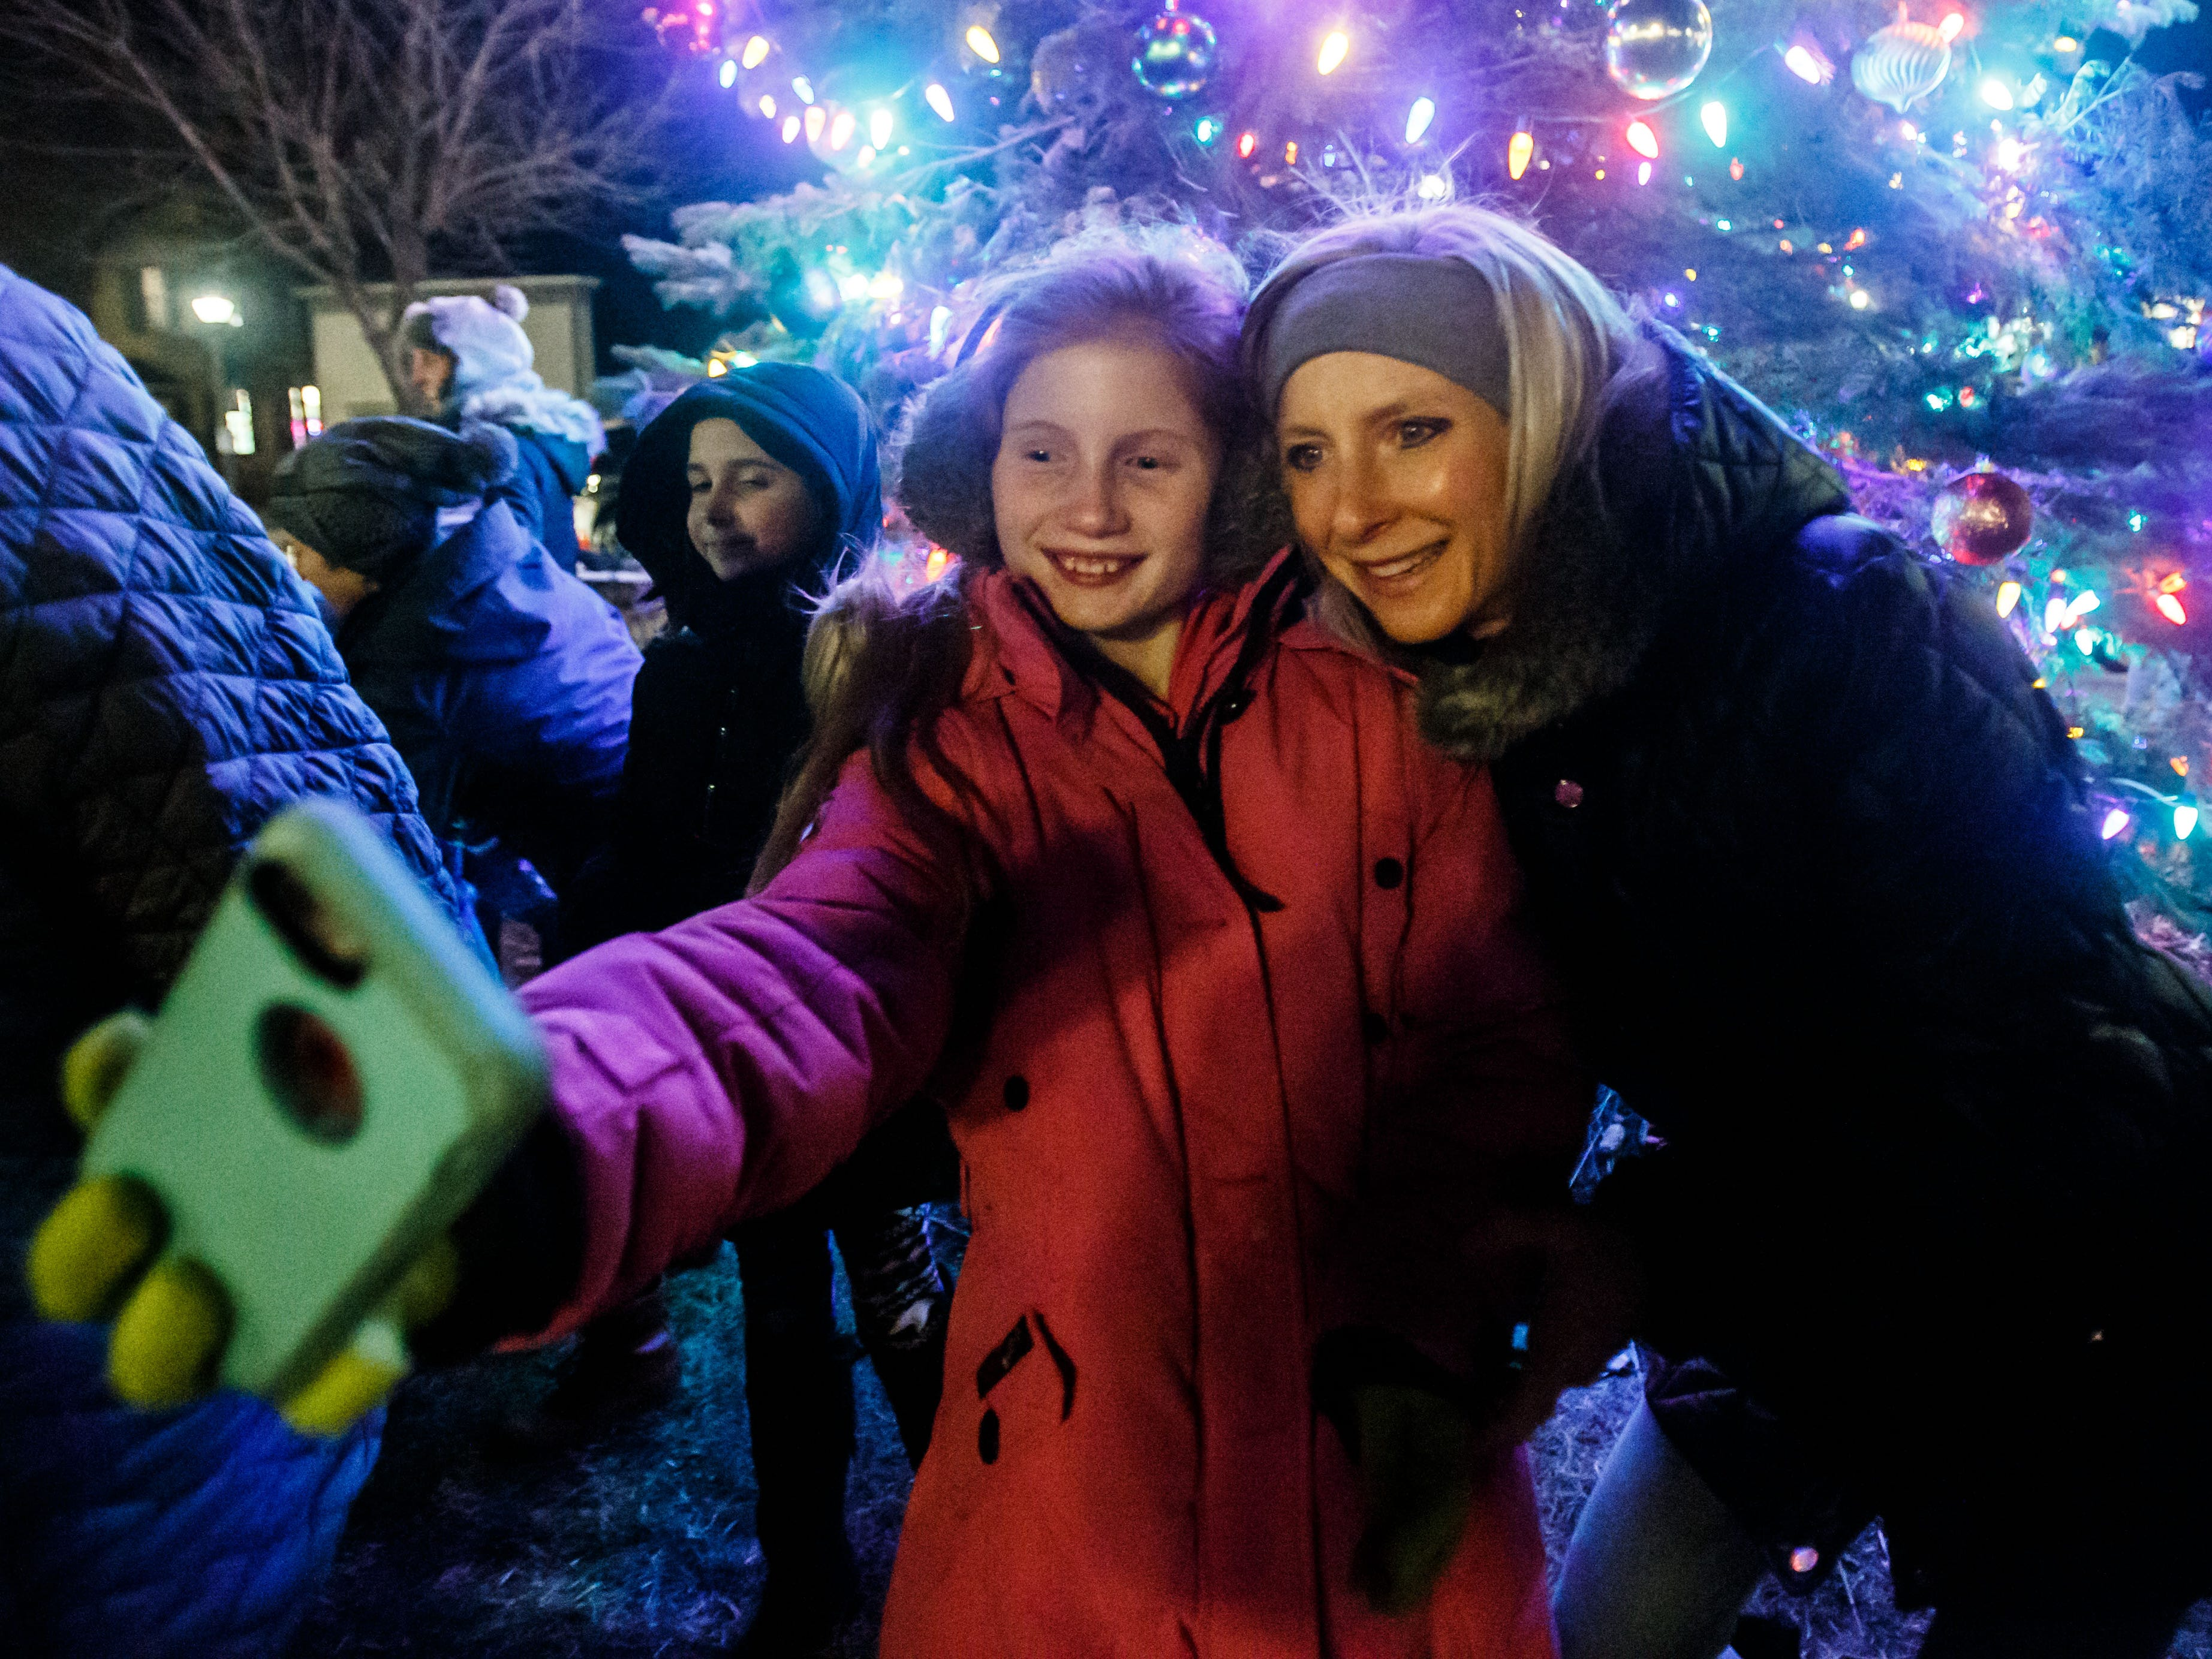 Kendall Kontranowski, 10, of Delafield, takes a selfie with her mom Kristin during the annual Delafield Tree Lighting event on Friday, Nov. 16, 2018. The event, hosted by the City of Delafield Tourism, featured live music, free cookies, hot cocoa and more.